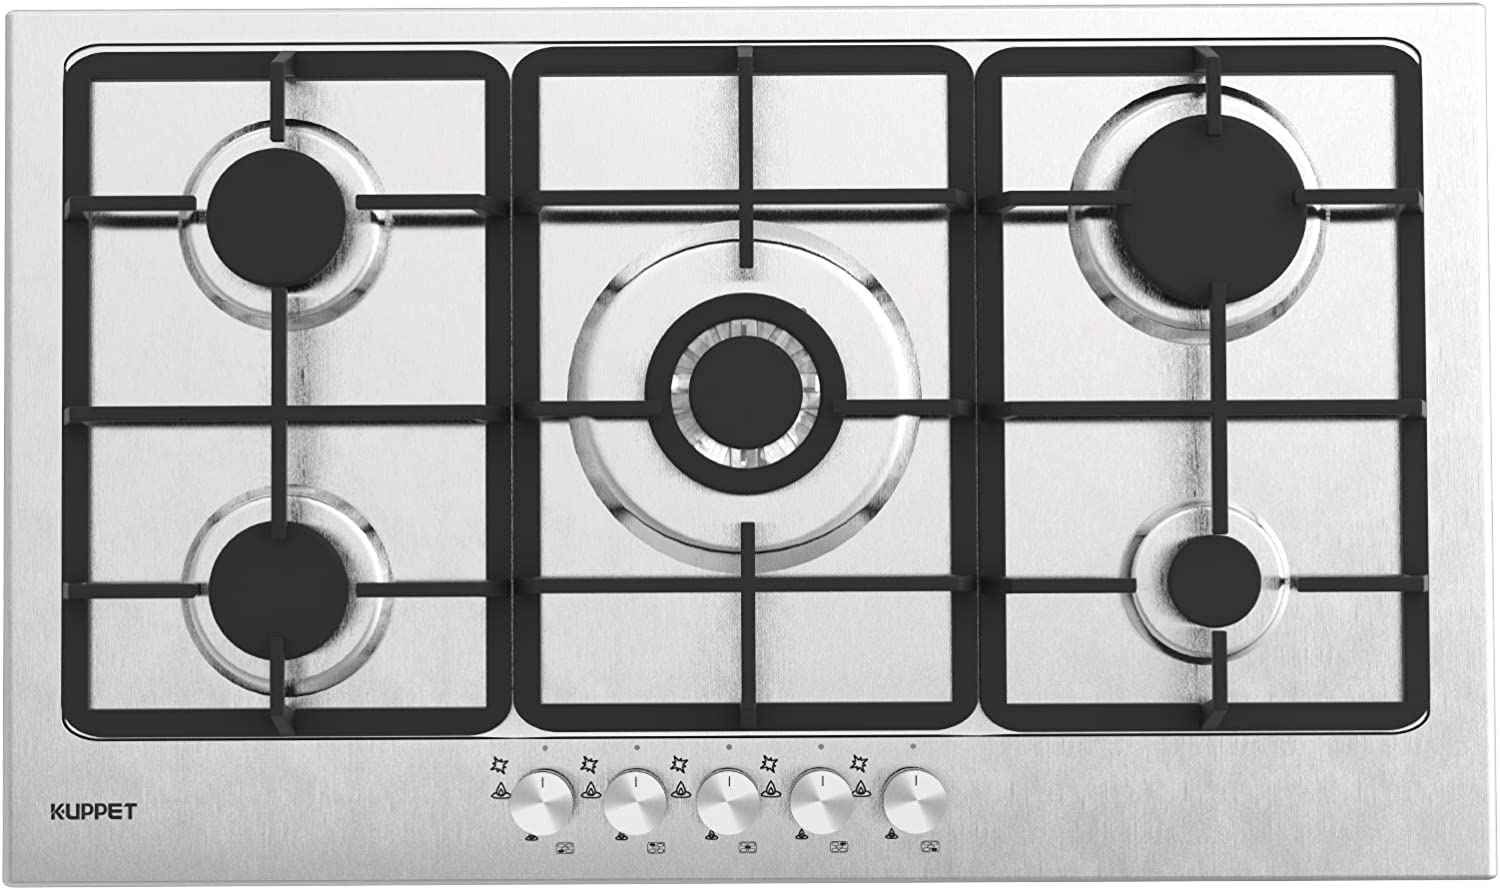 Gas Cooktop, KUPPET 20x34 inches Built in Gas Cooktop